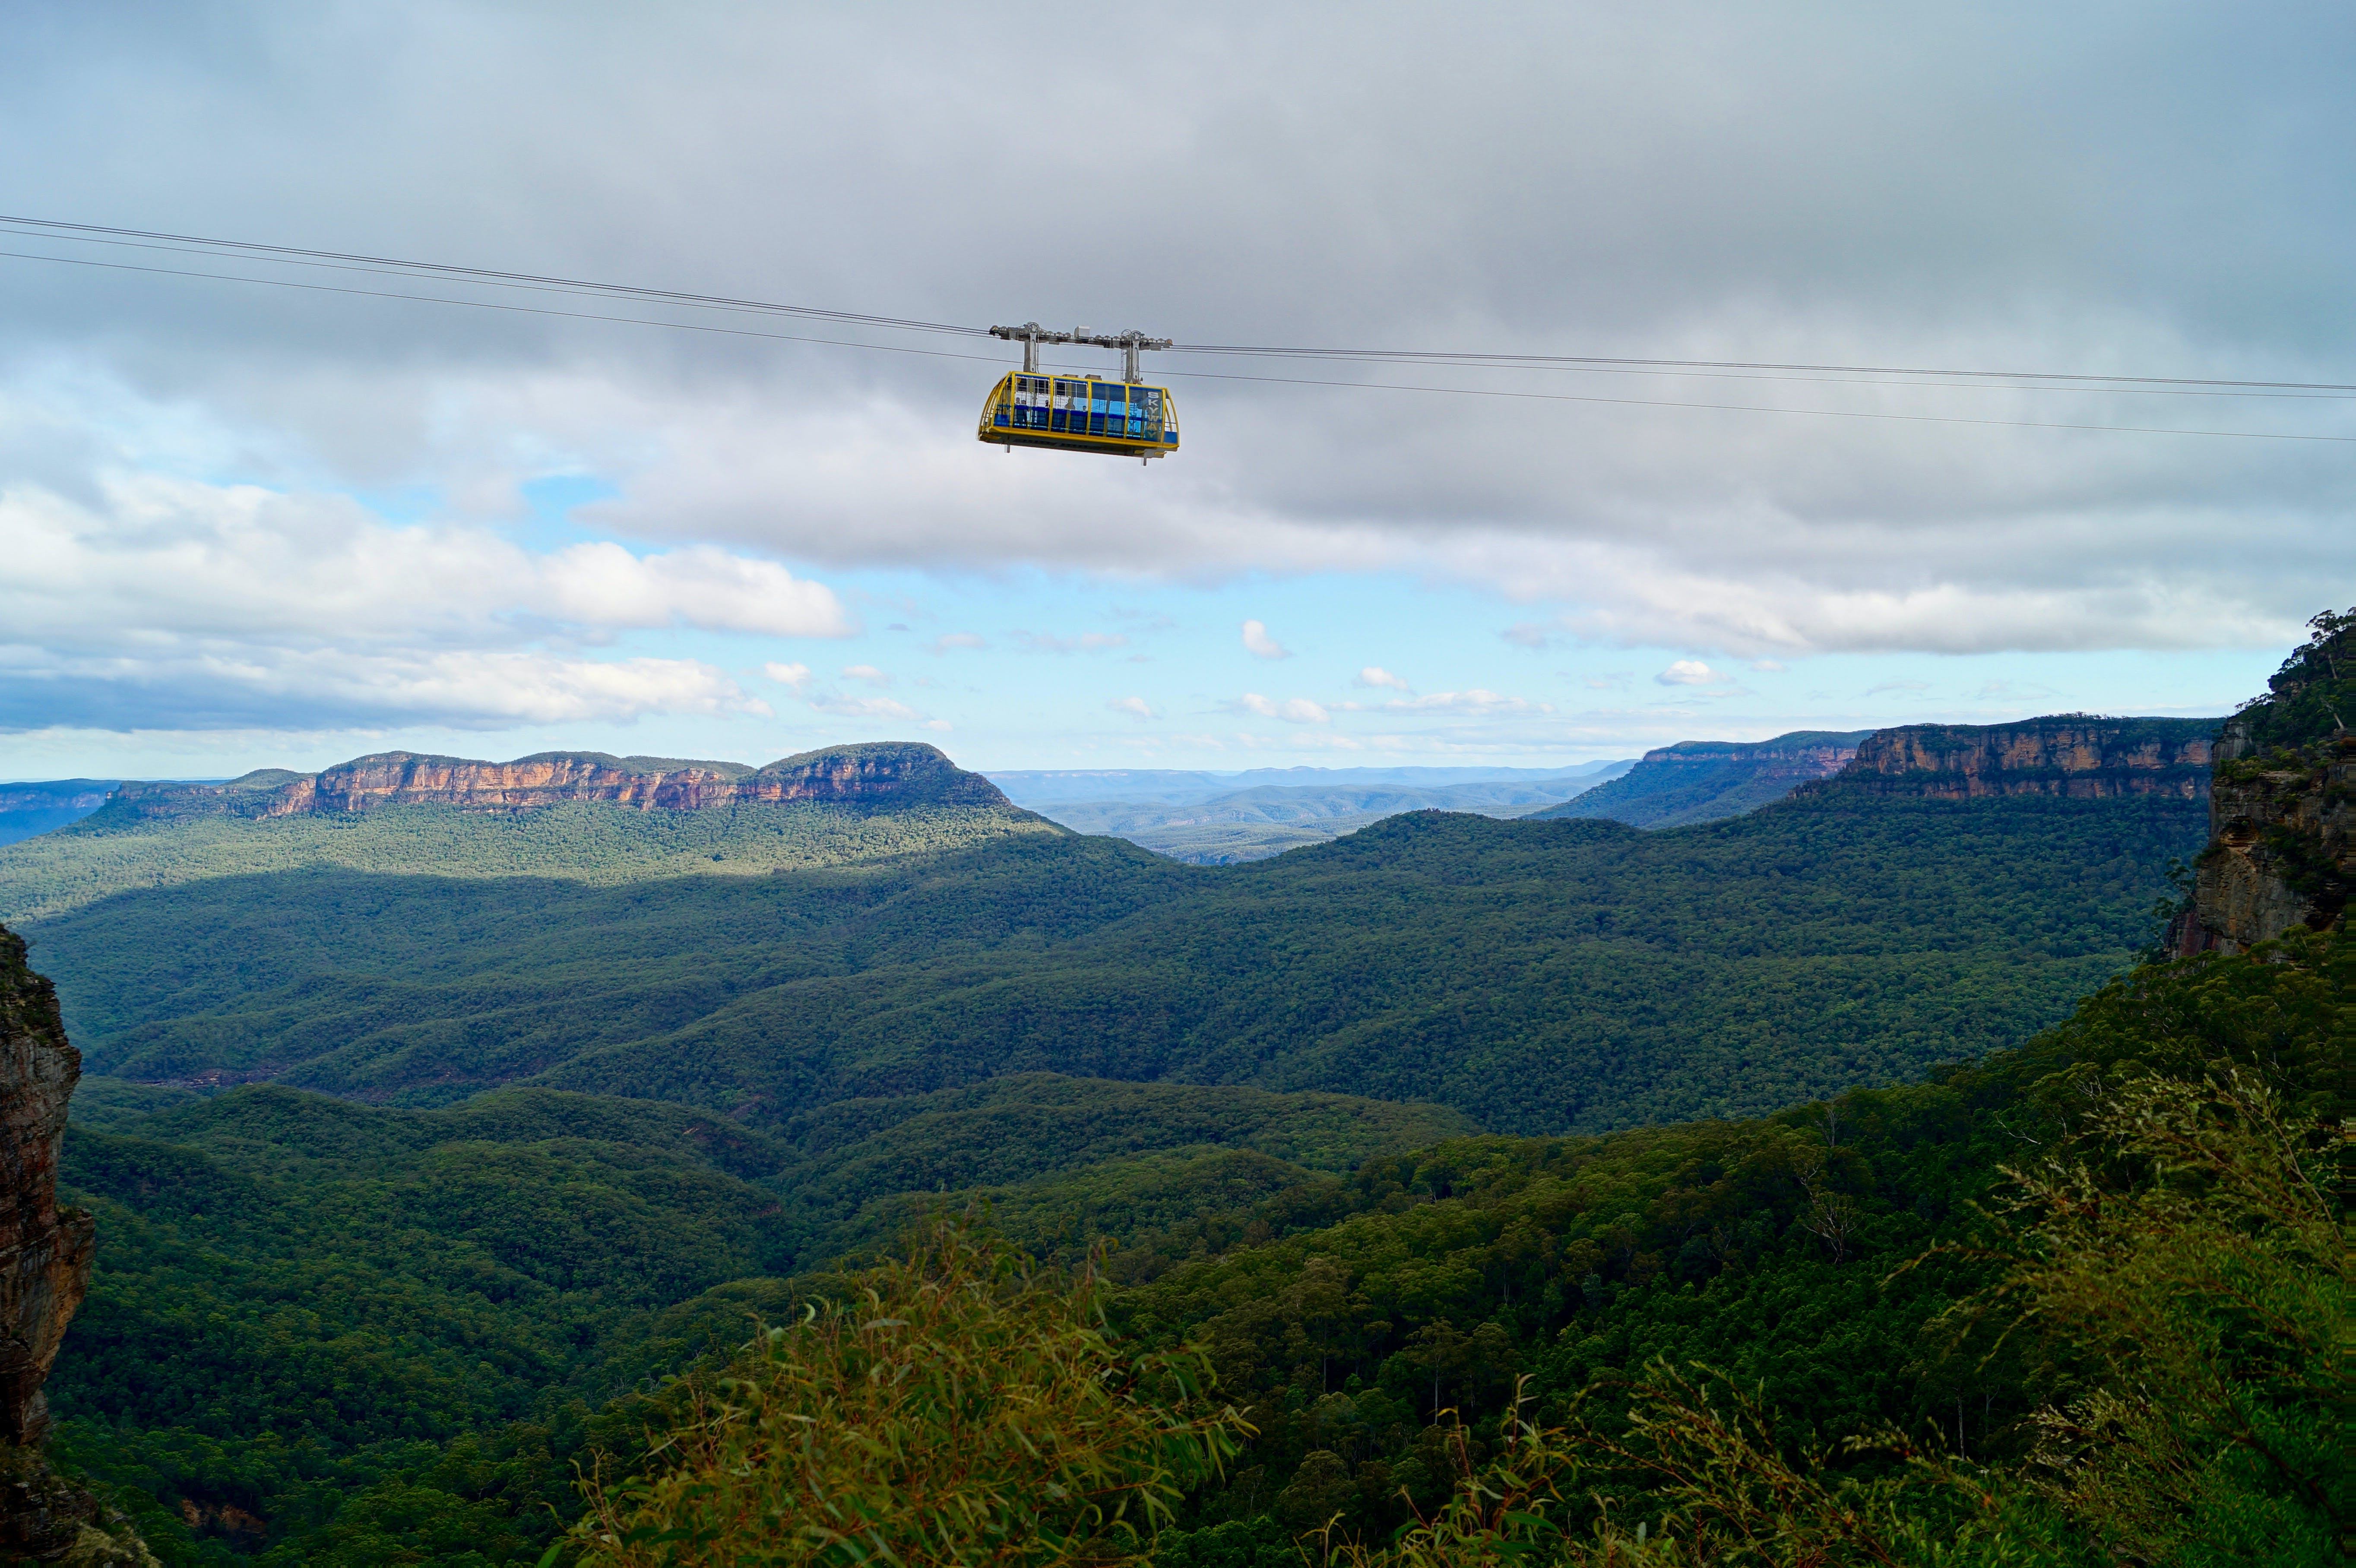 White Zip Line Bus Above on Green Leaved Trees